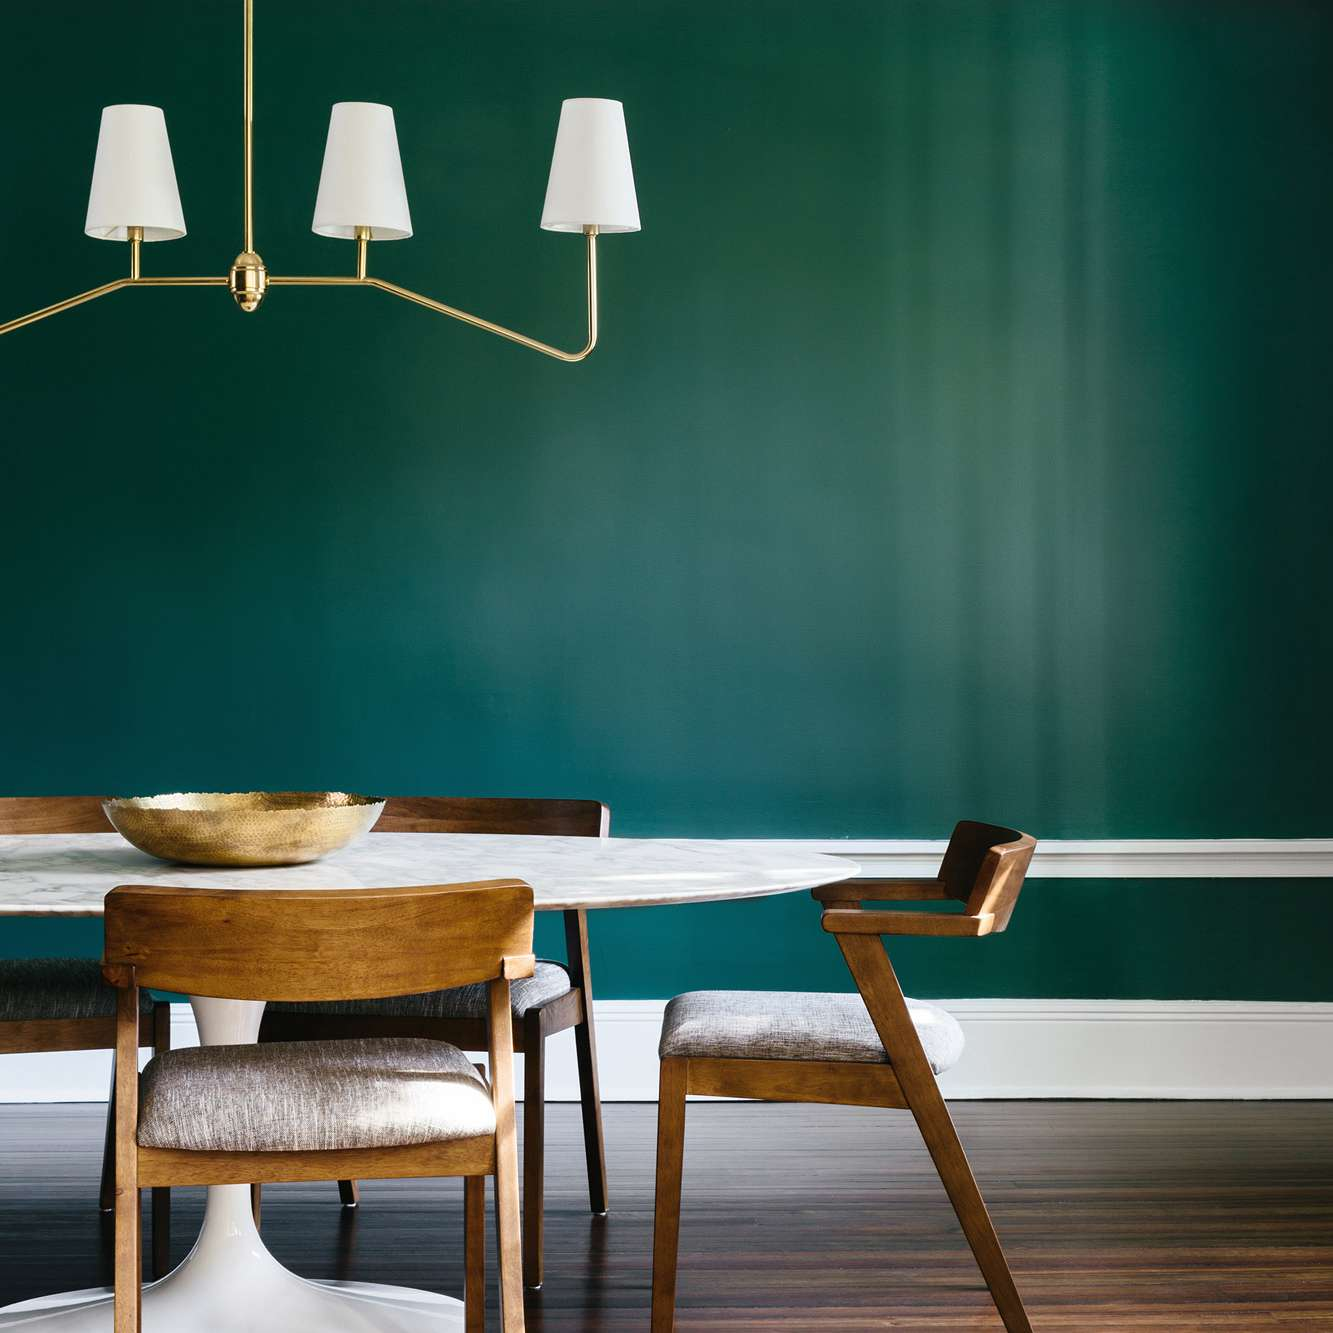 A dark green room with sculptural furniture